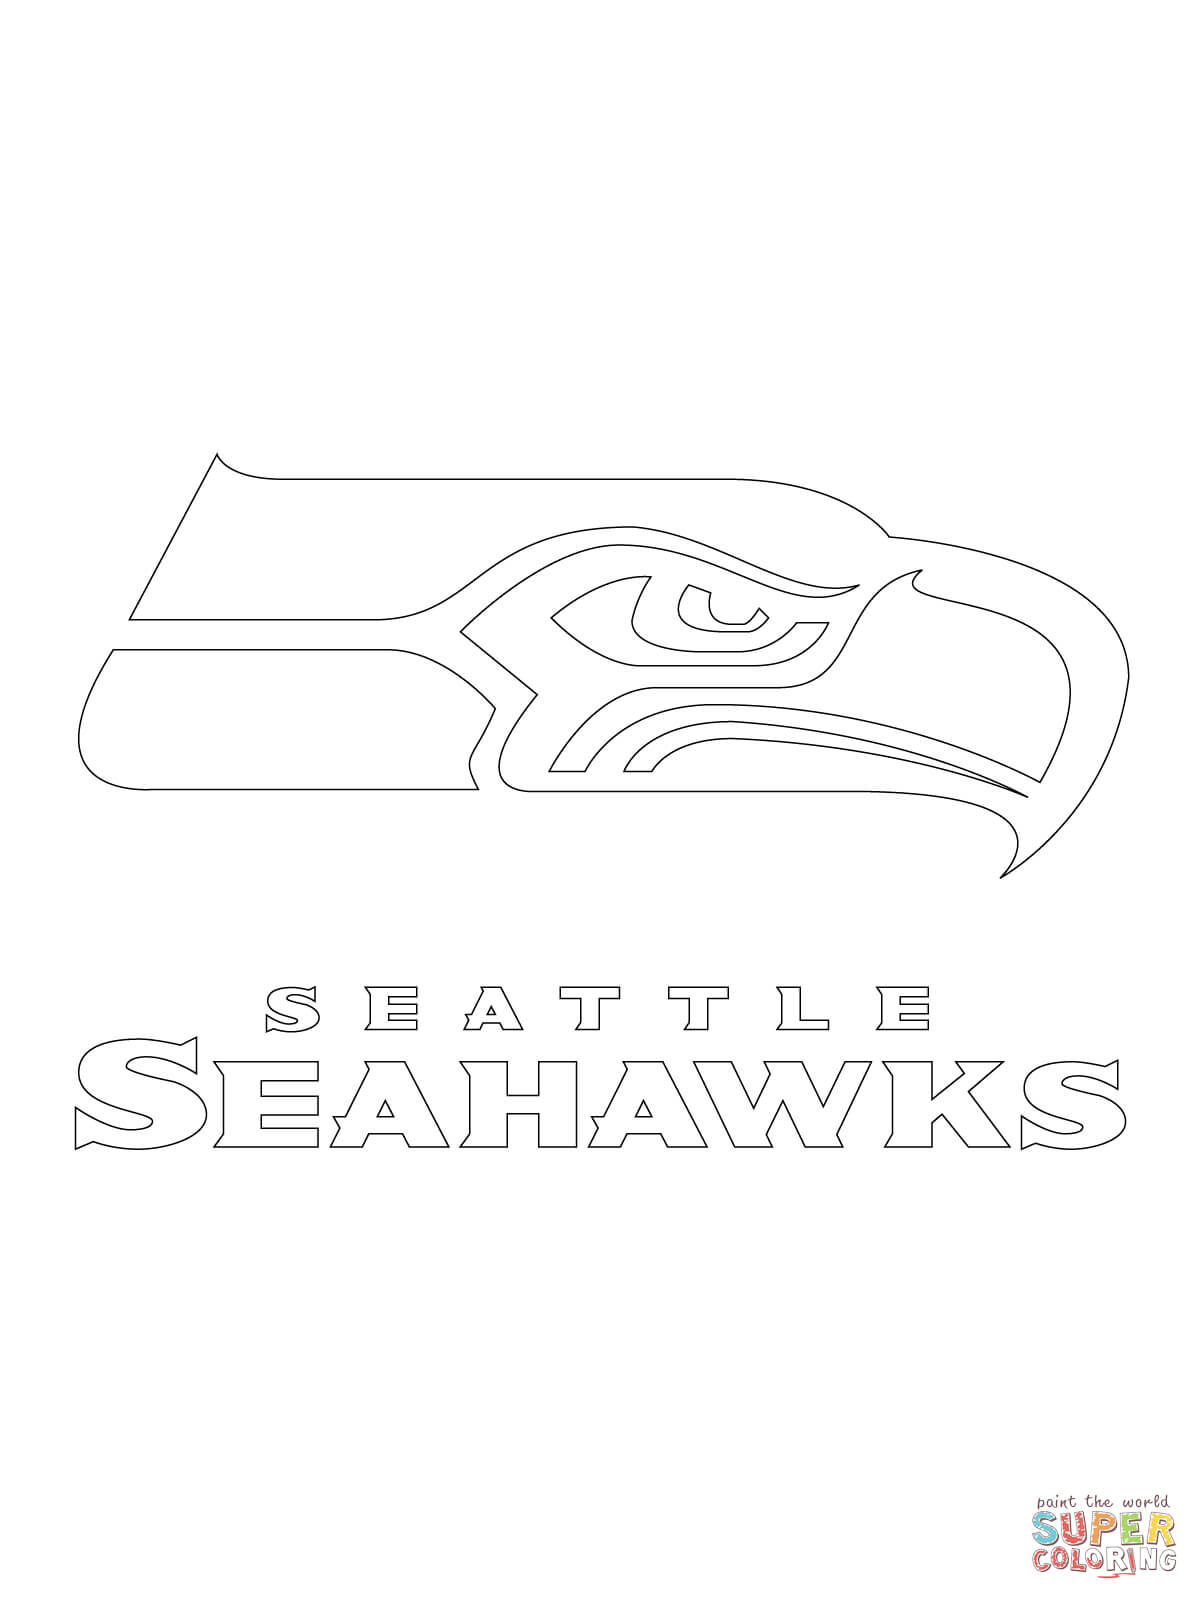 seattle seahawks logo coloring page free printable coloring pages